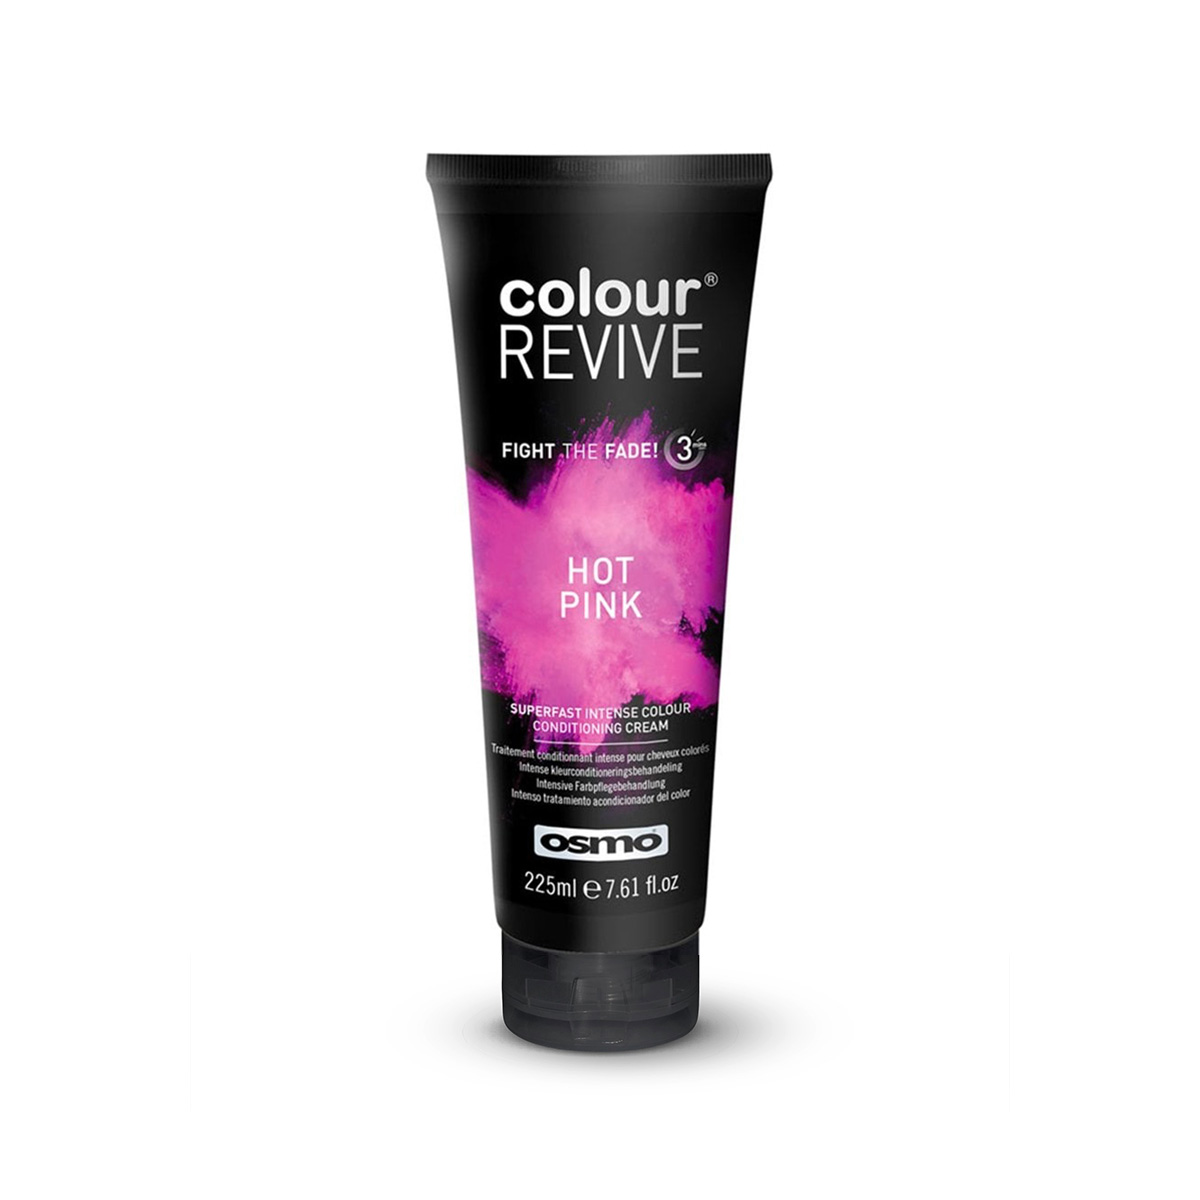 COLOUR REVIVE MASK 225ml HOT PINK